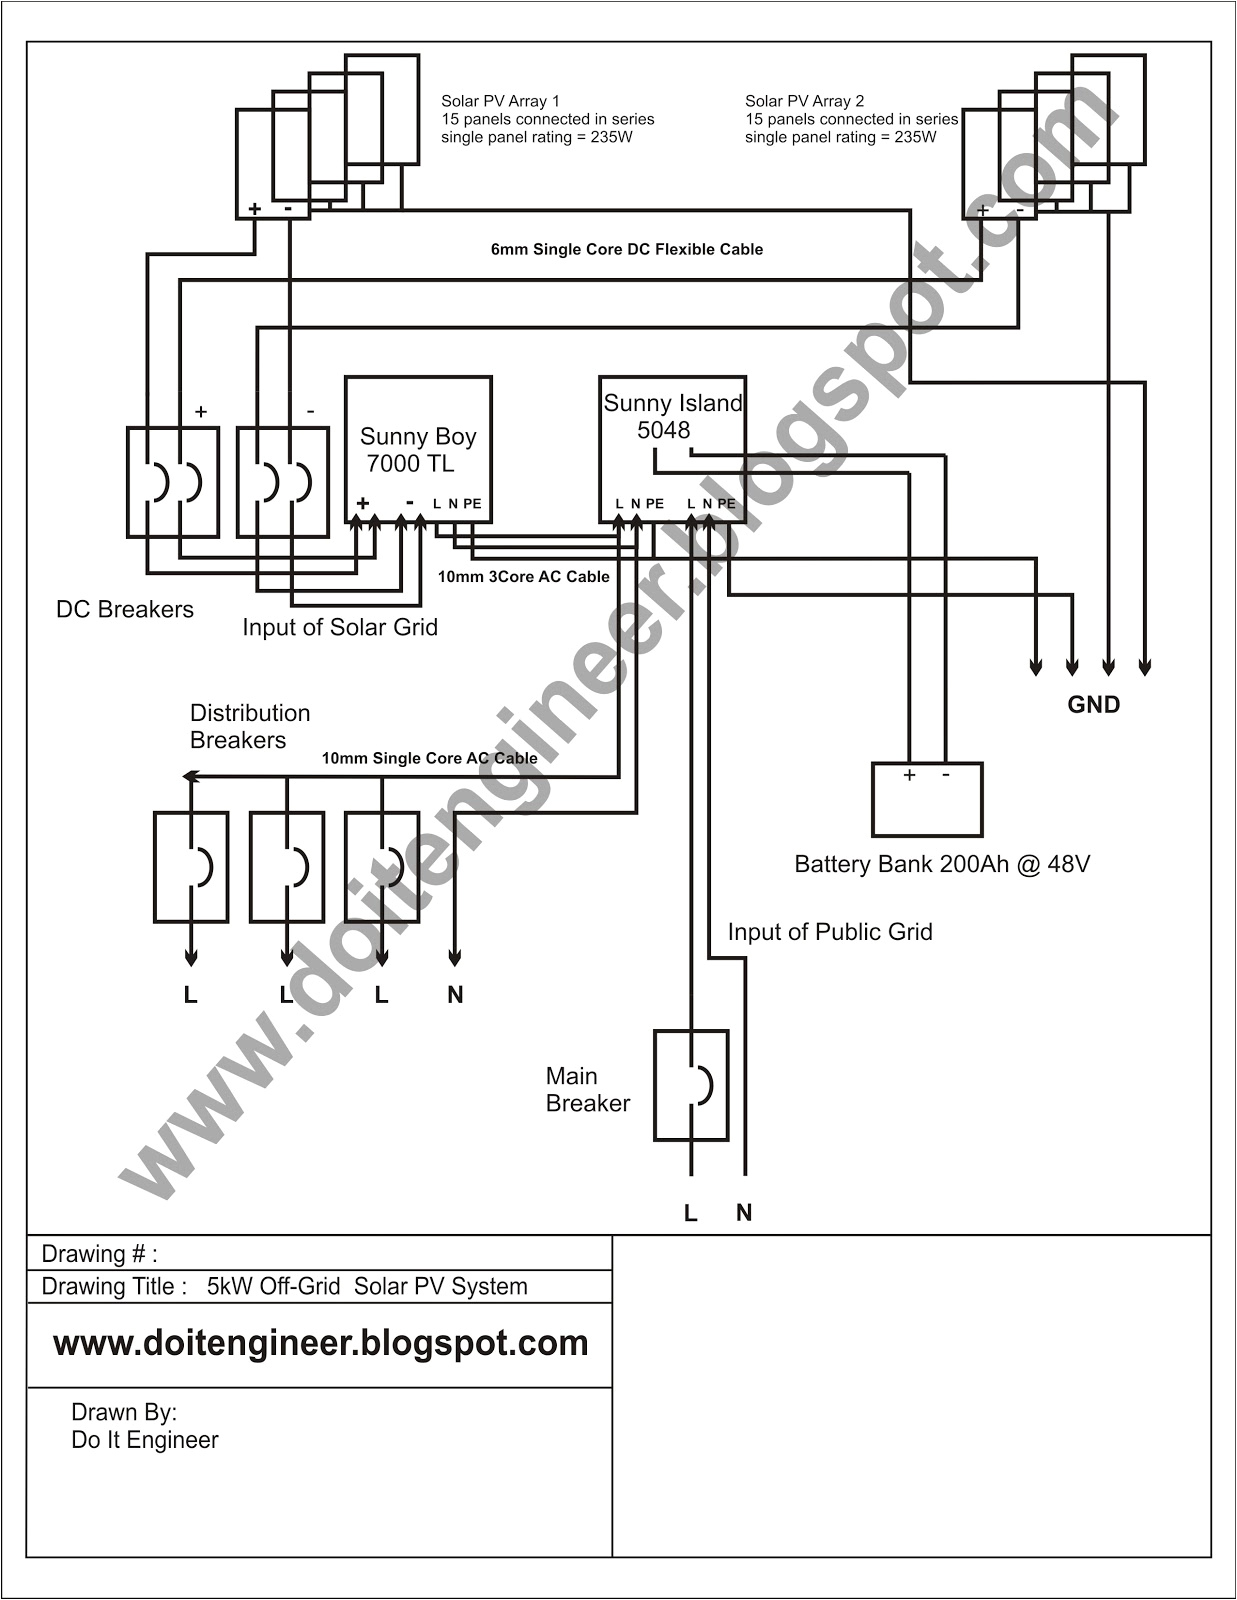 you may also know a how to design an off grid hybrid solar pv system using sma solar inverters b circuit diagram for 5kw off grid solar pv system